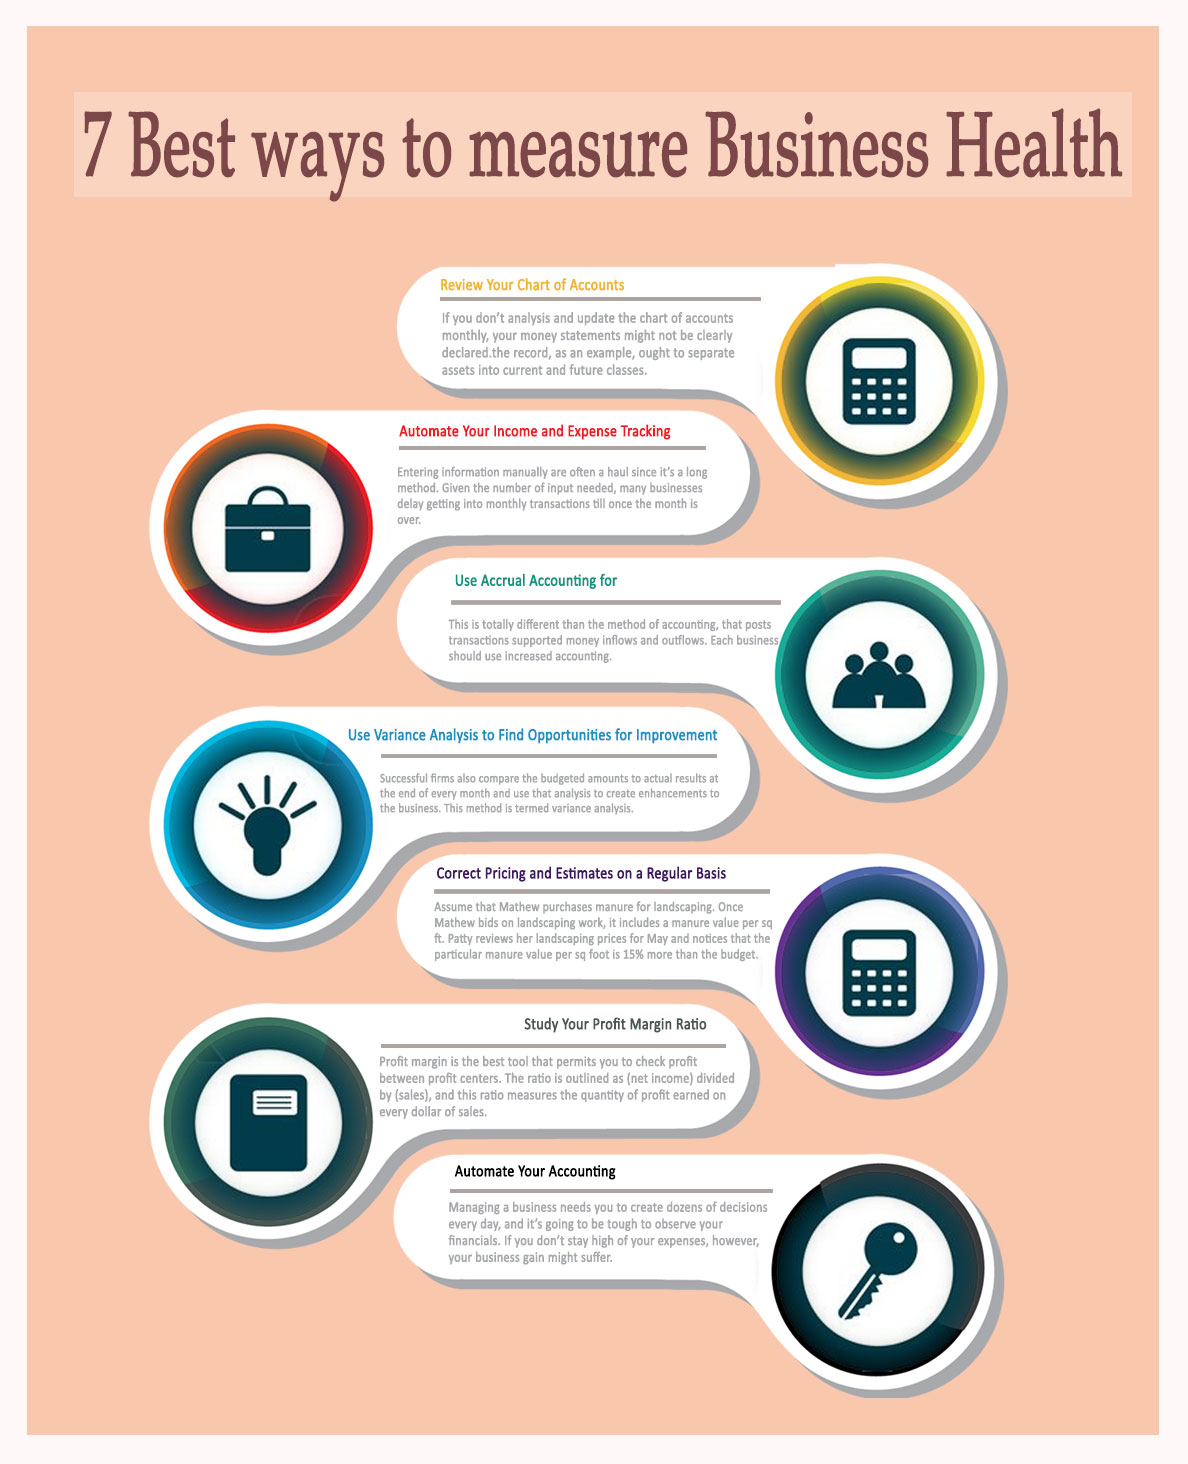 7 Best ways to measure Business Health